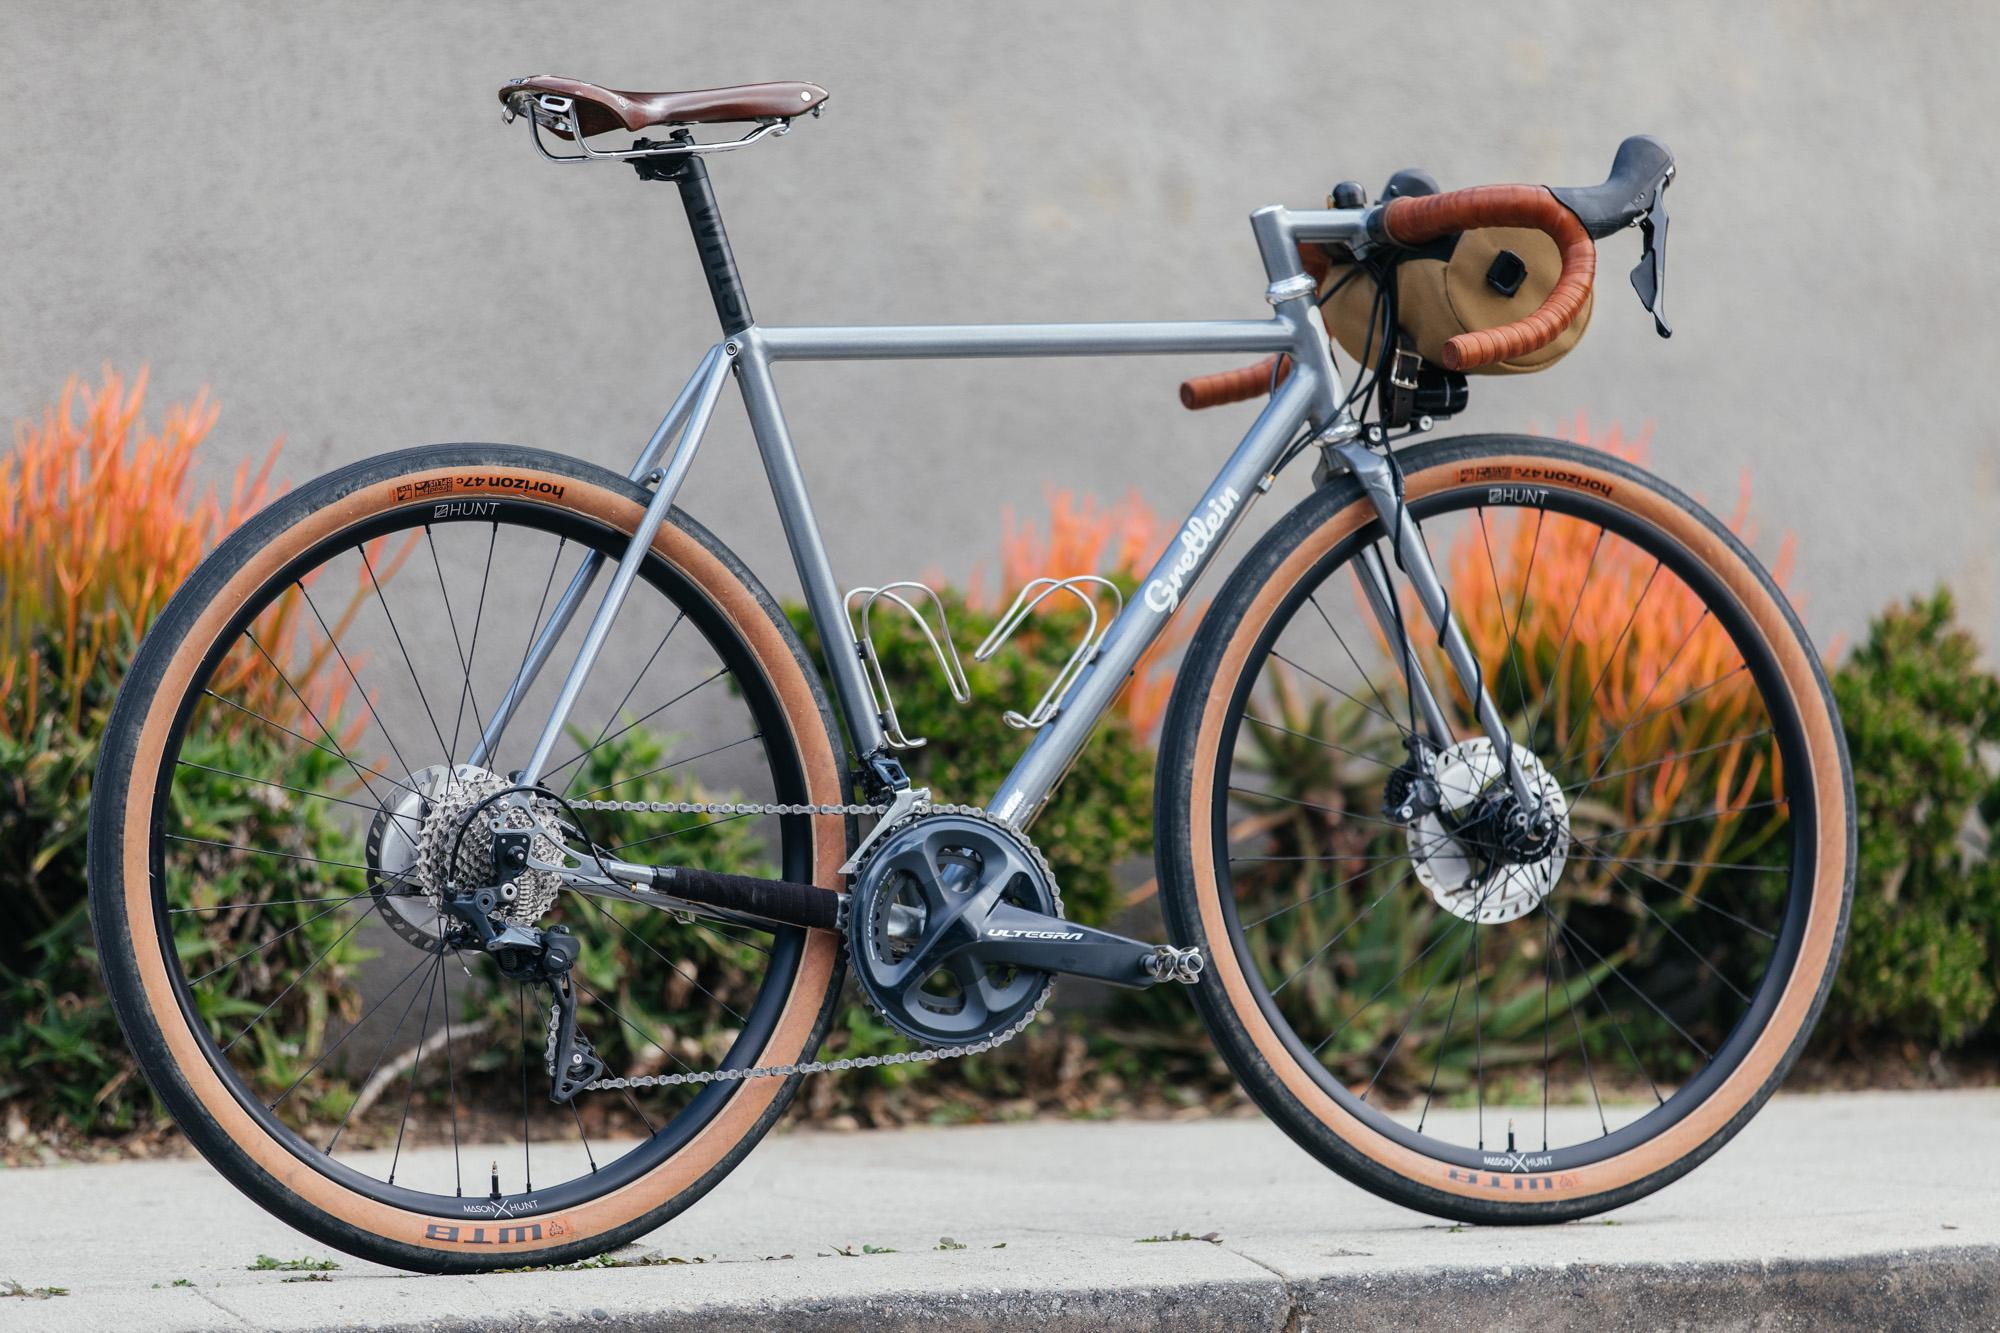 Blake's Gretlein Cycles 650b Disc Road